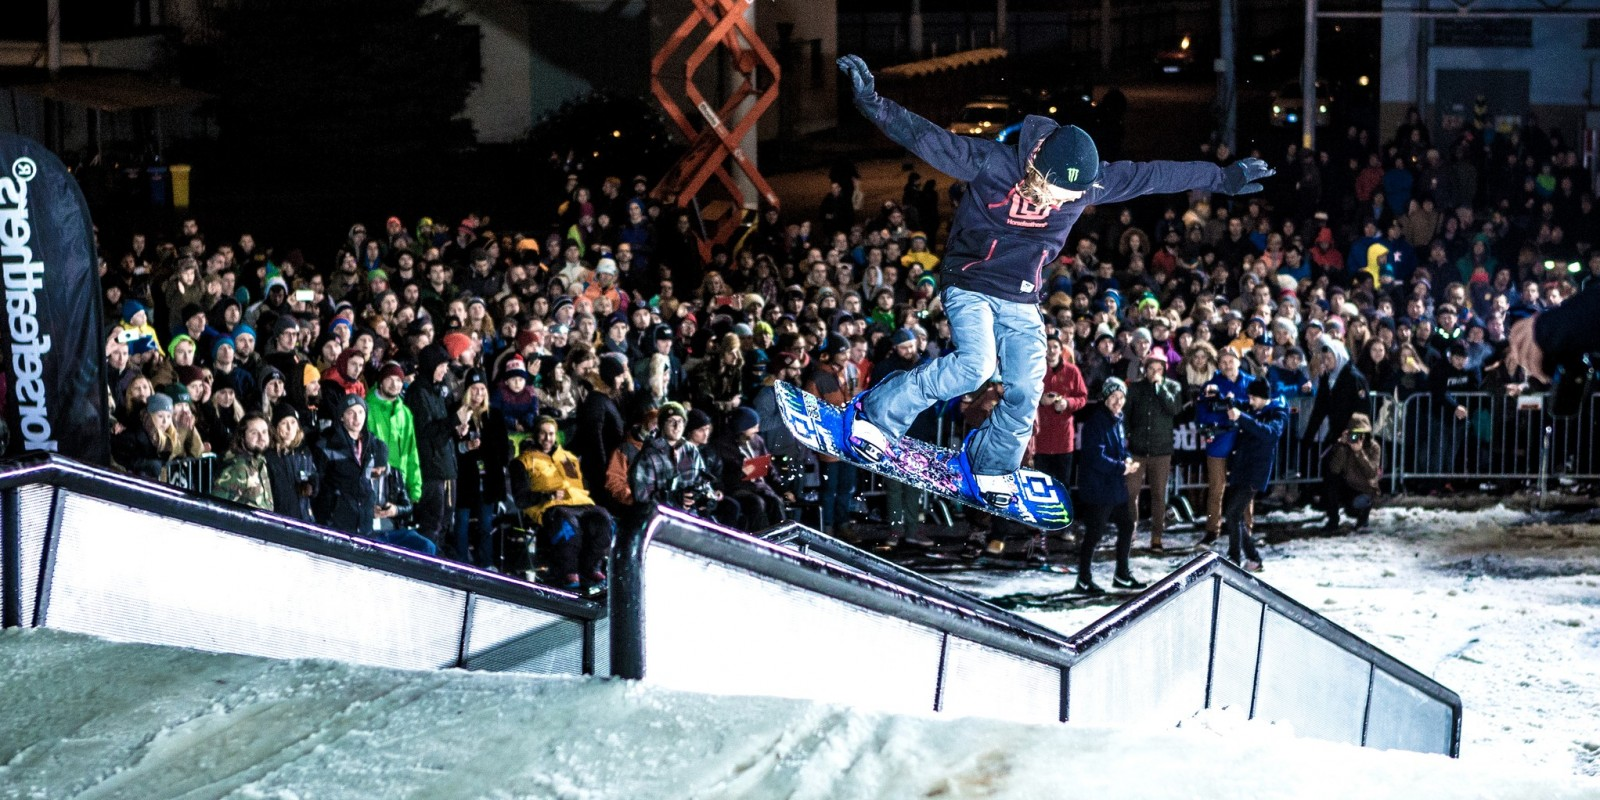 Eiki Helgason at the 2015 Horsefeathers City Jib event in Pilsen, Czech Republic